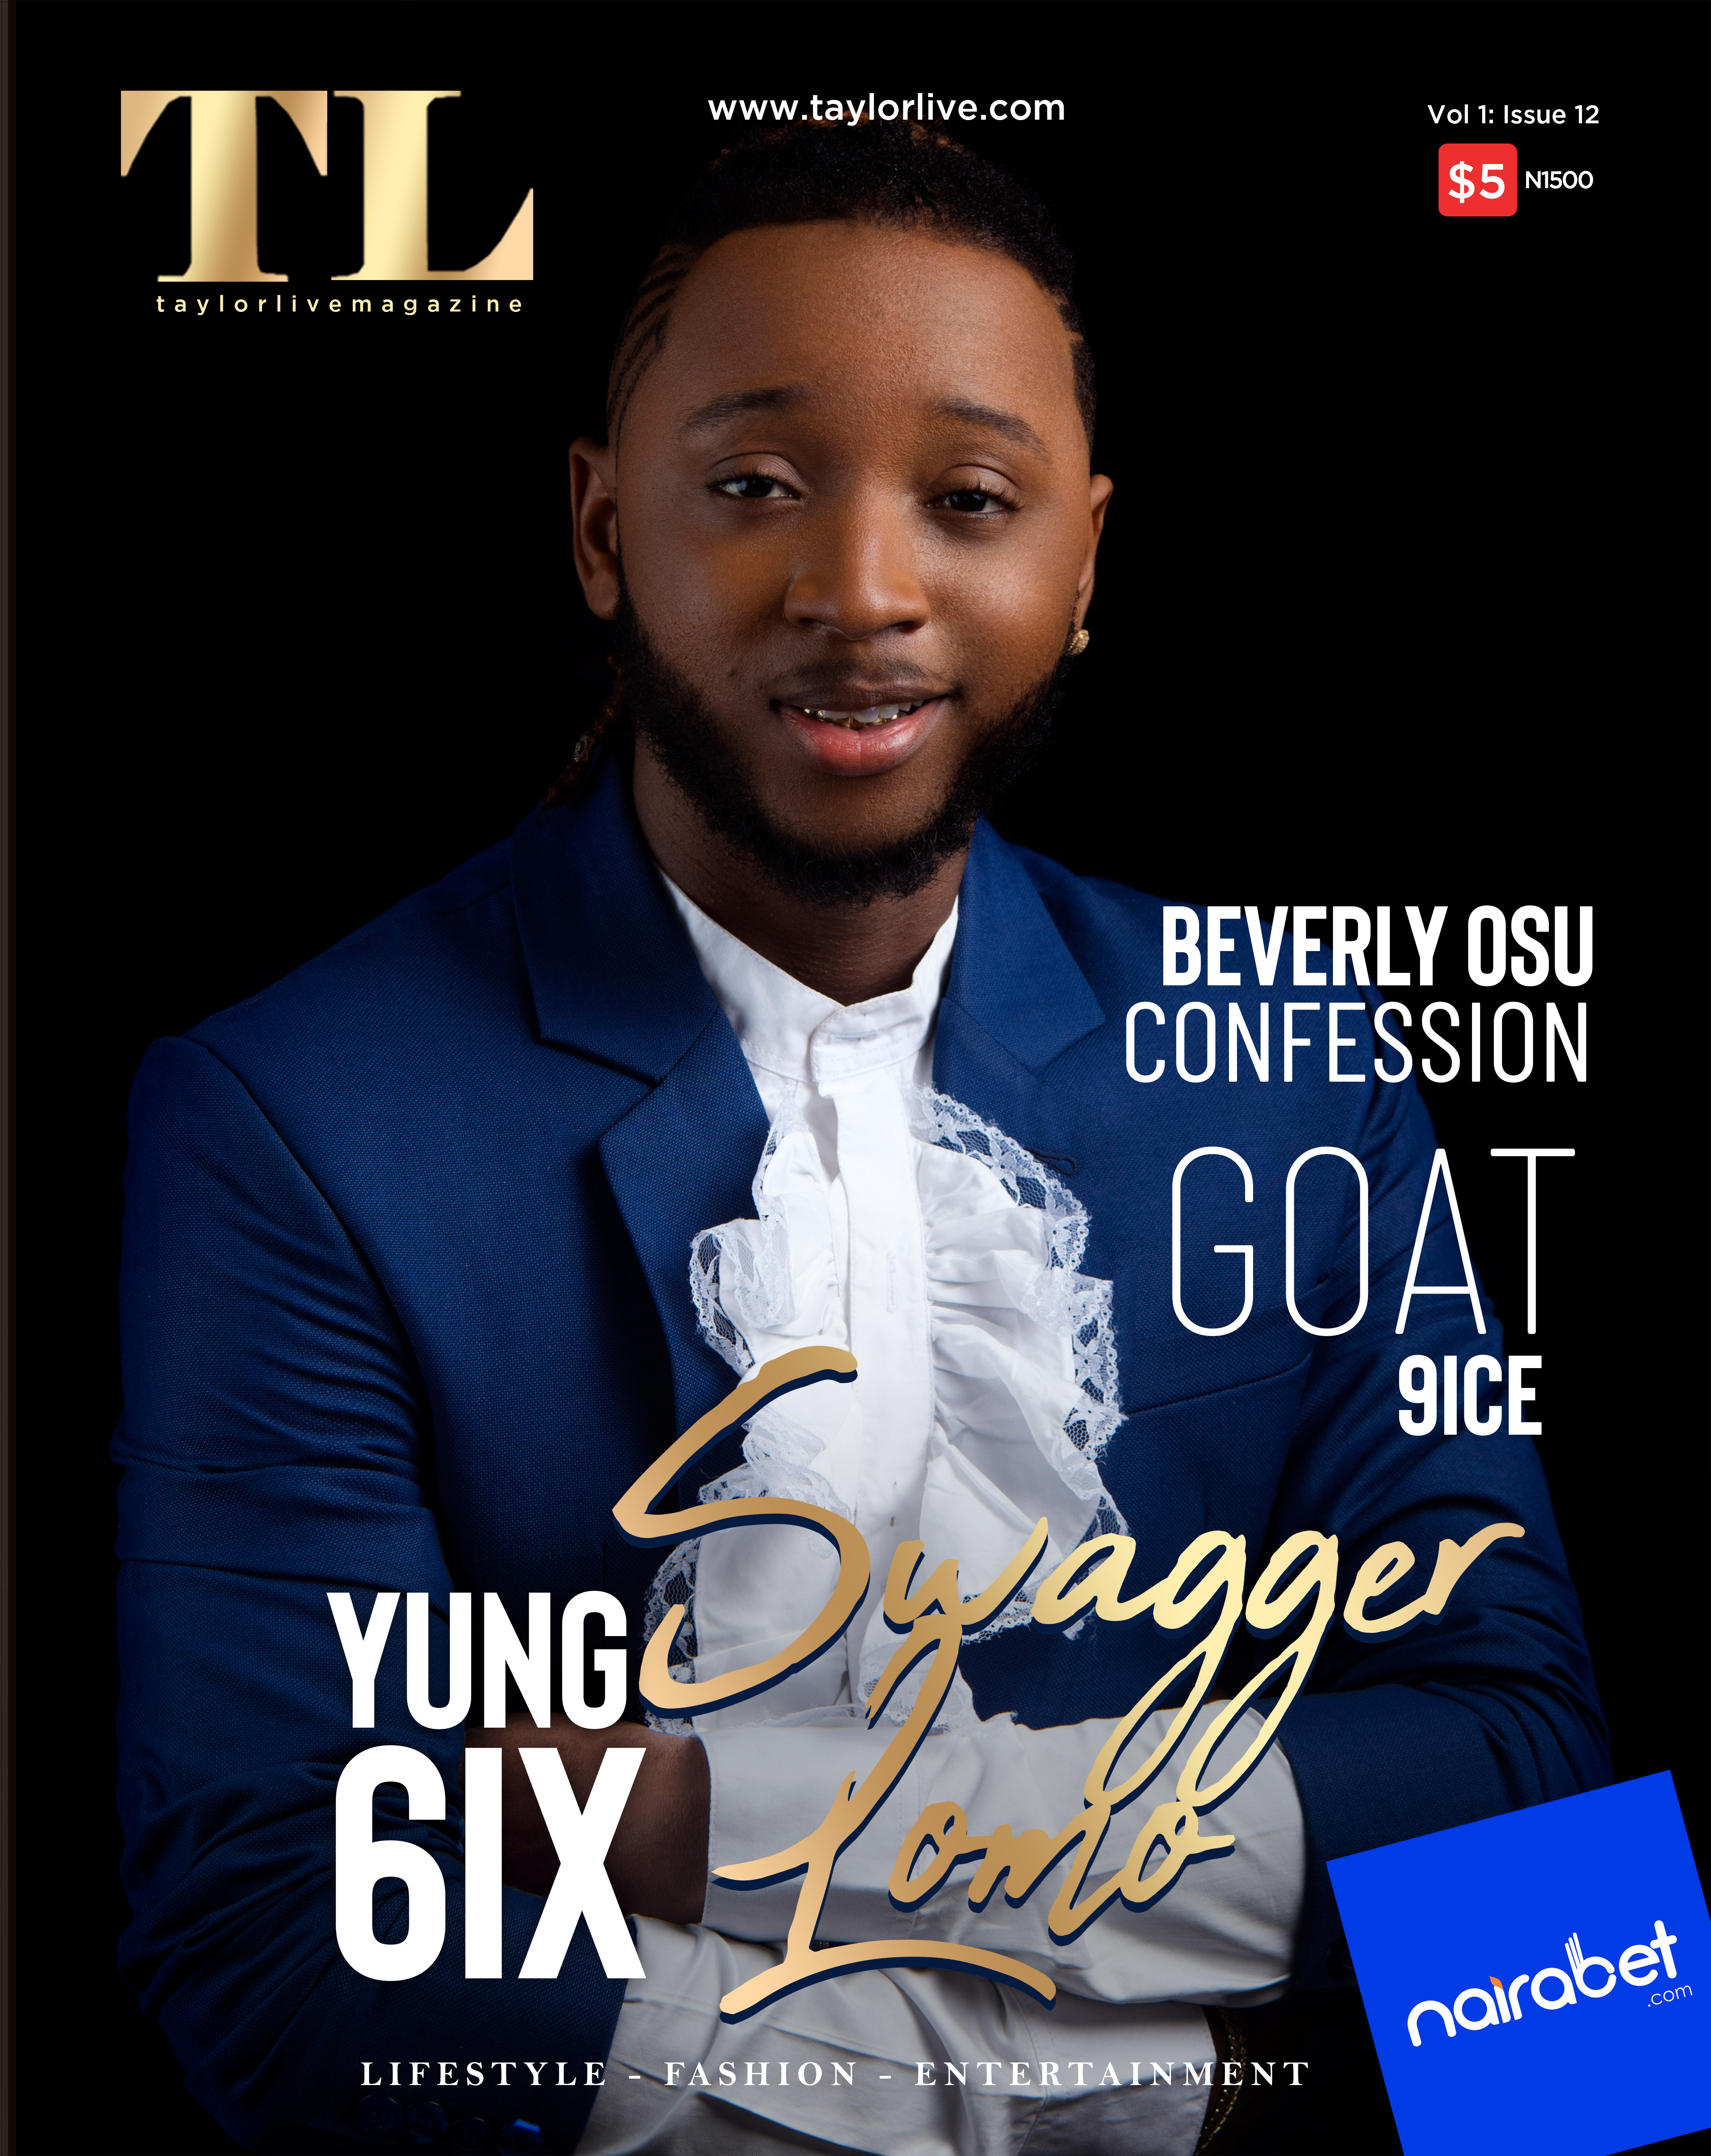 Swaggerlomo! YUNG6IX Covers Taylor Live Magazine's Latest Issue